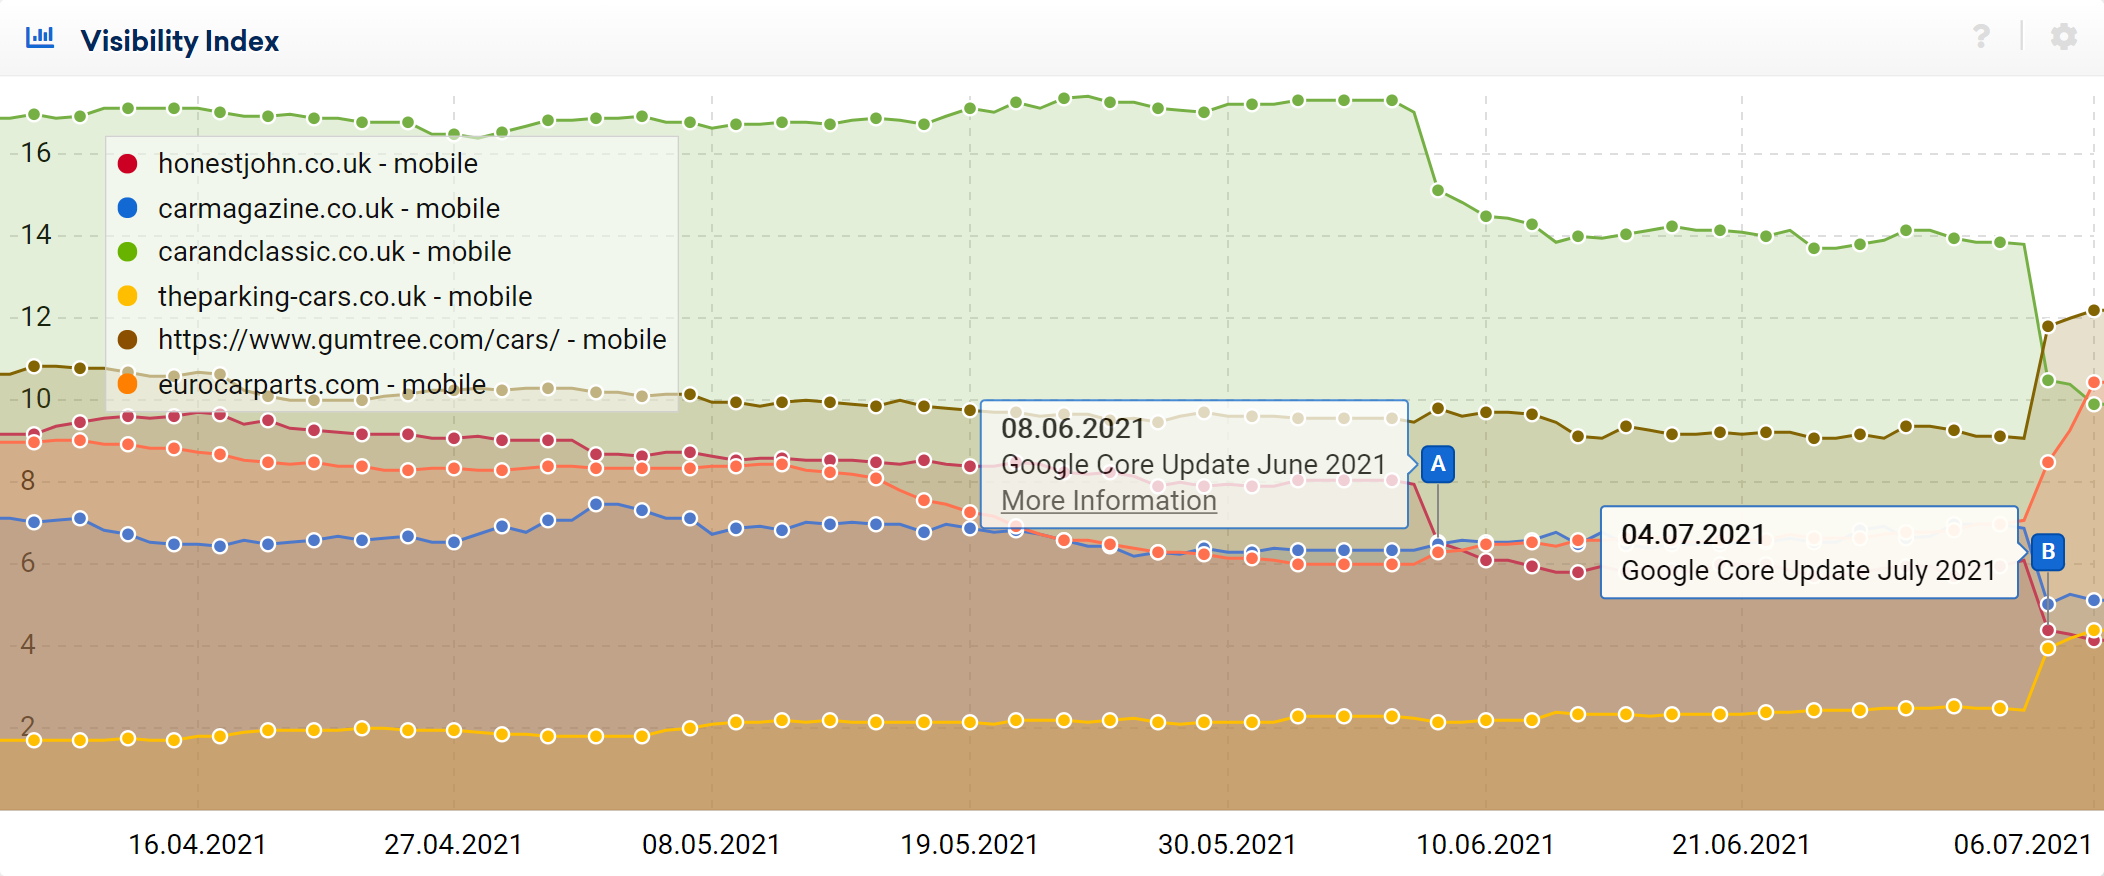 Example visibility index graph for Google search UK